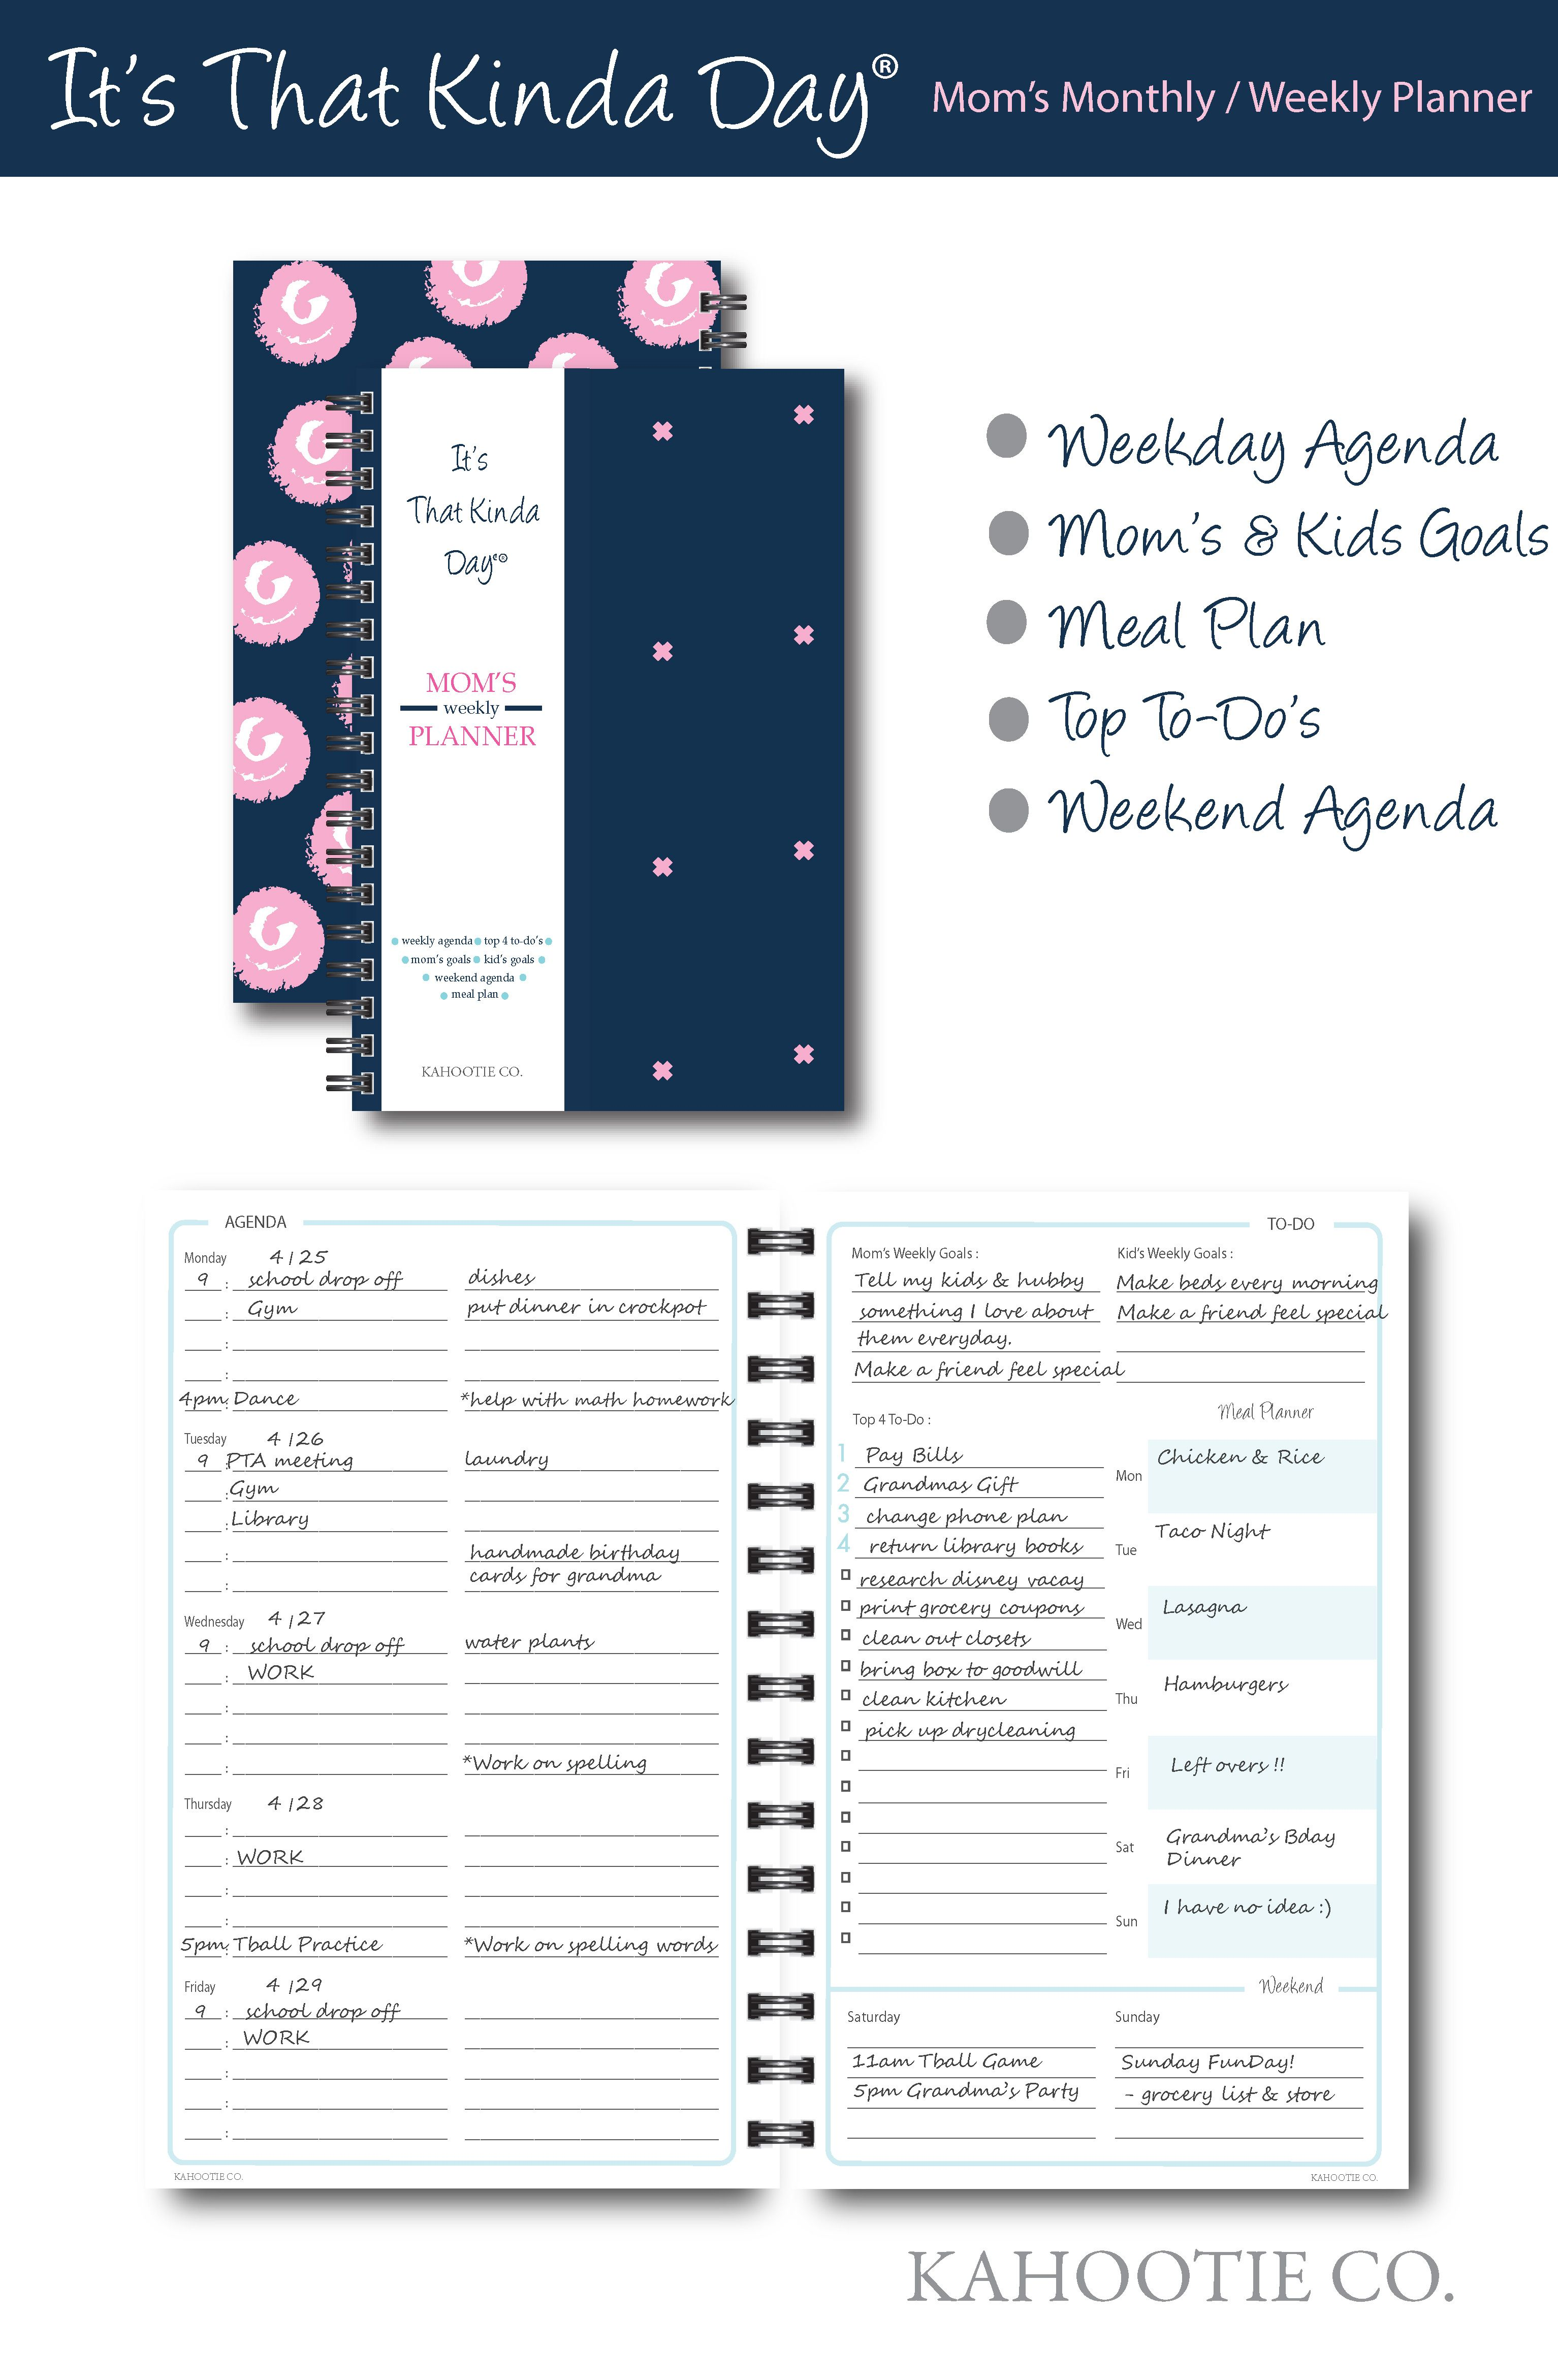 Kahootie Co It S That Kinda Day Mom S Weekly Planner 6 X 9 Navy Itkmn At Staples Weekly Planner Mom Planner Planner